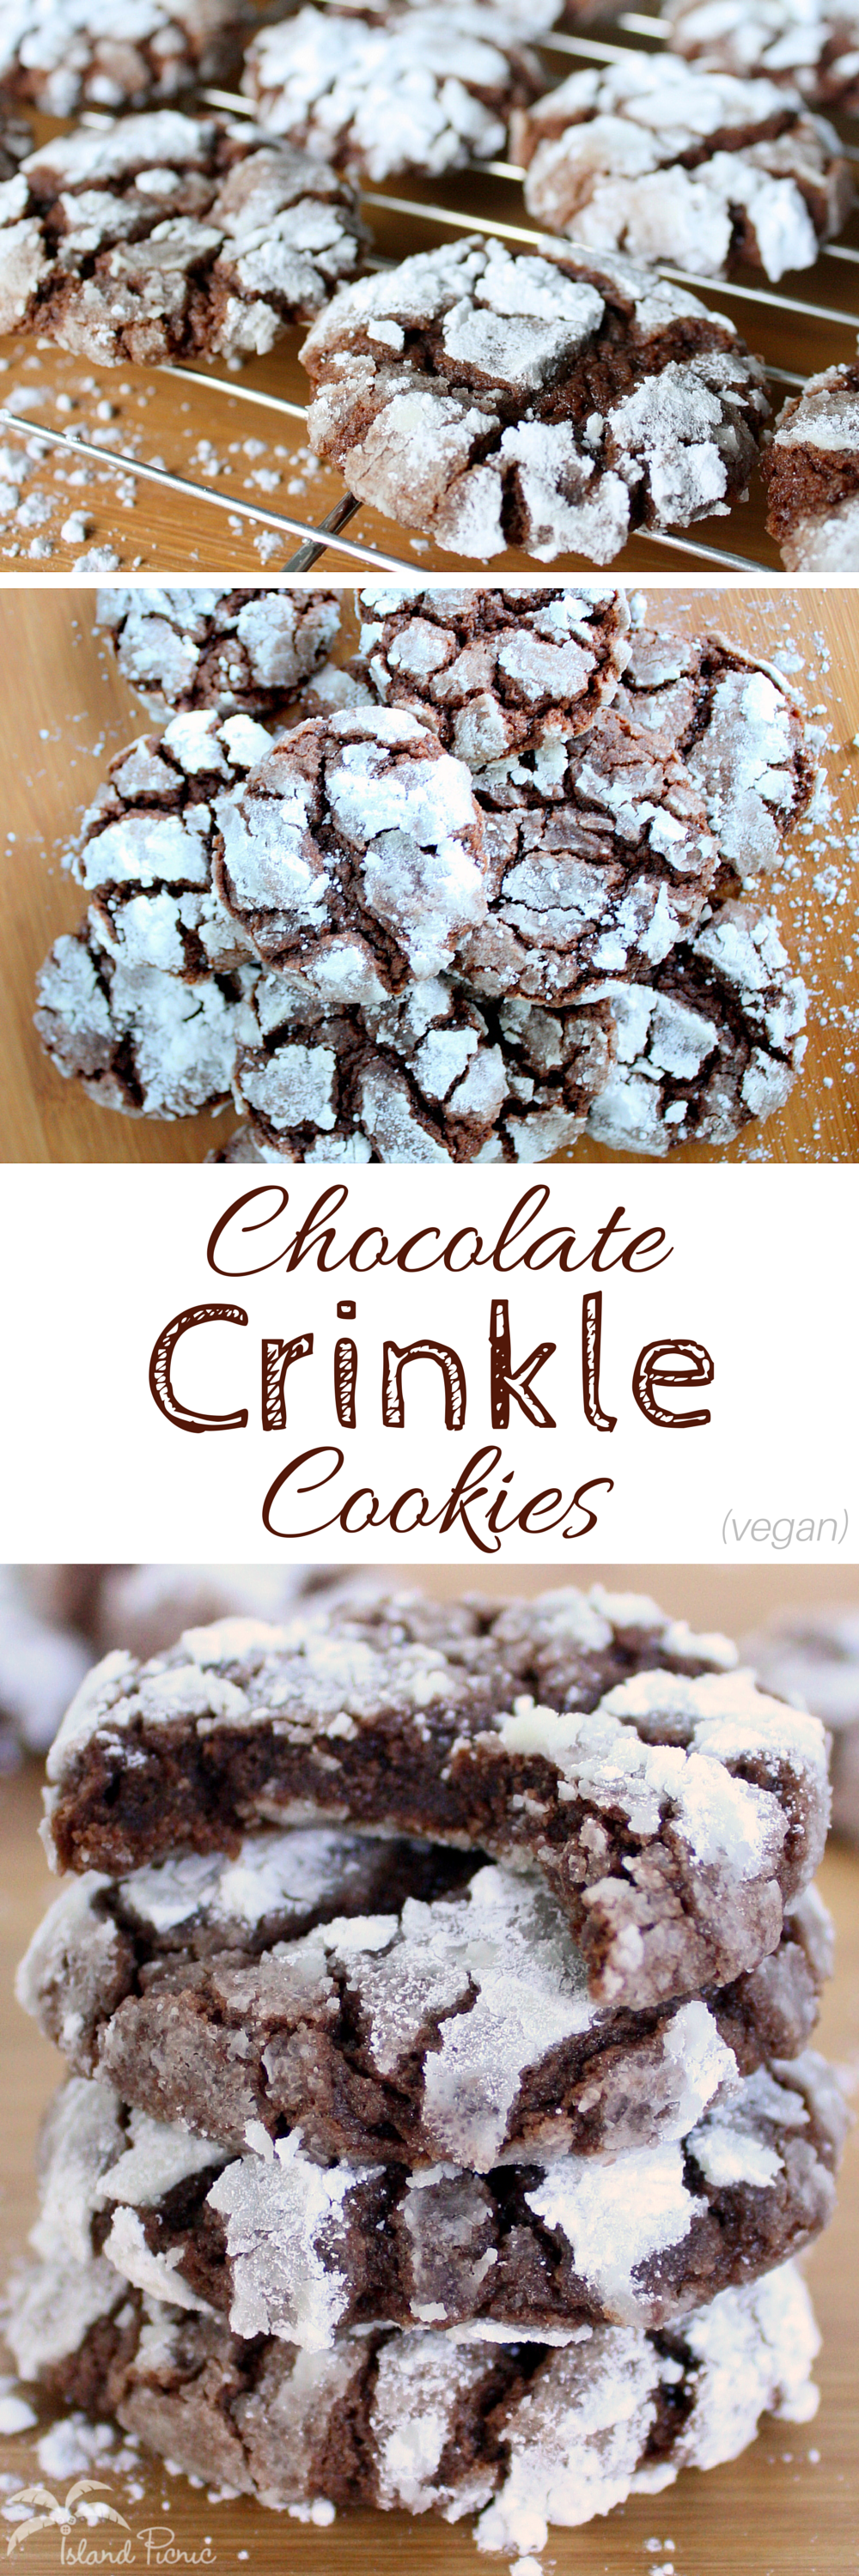 ChocolateCrinkleCookiesVegan